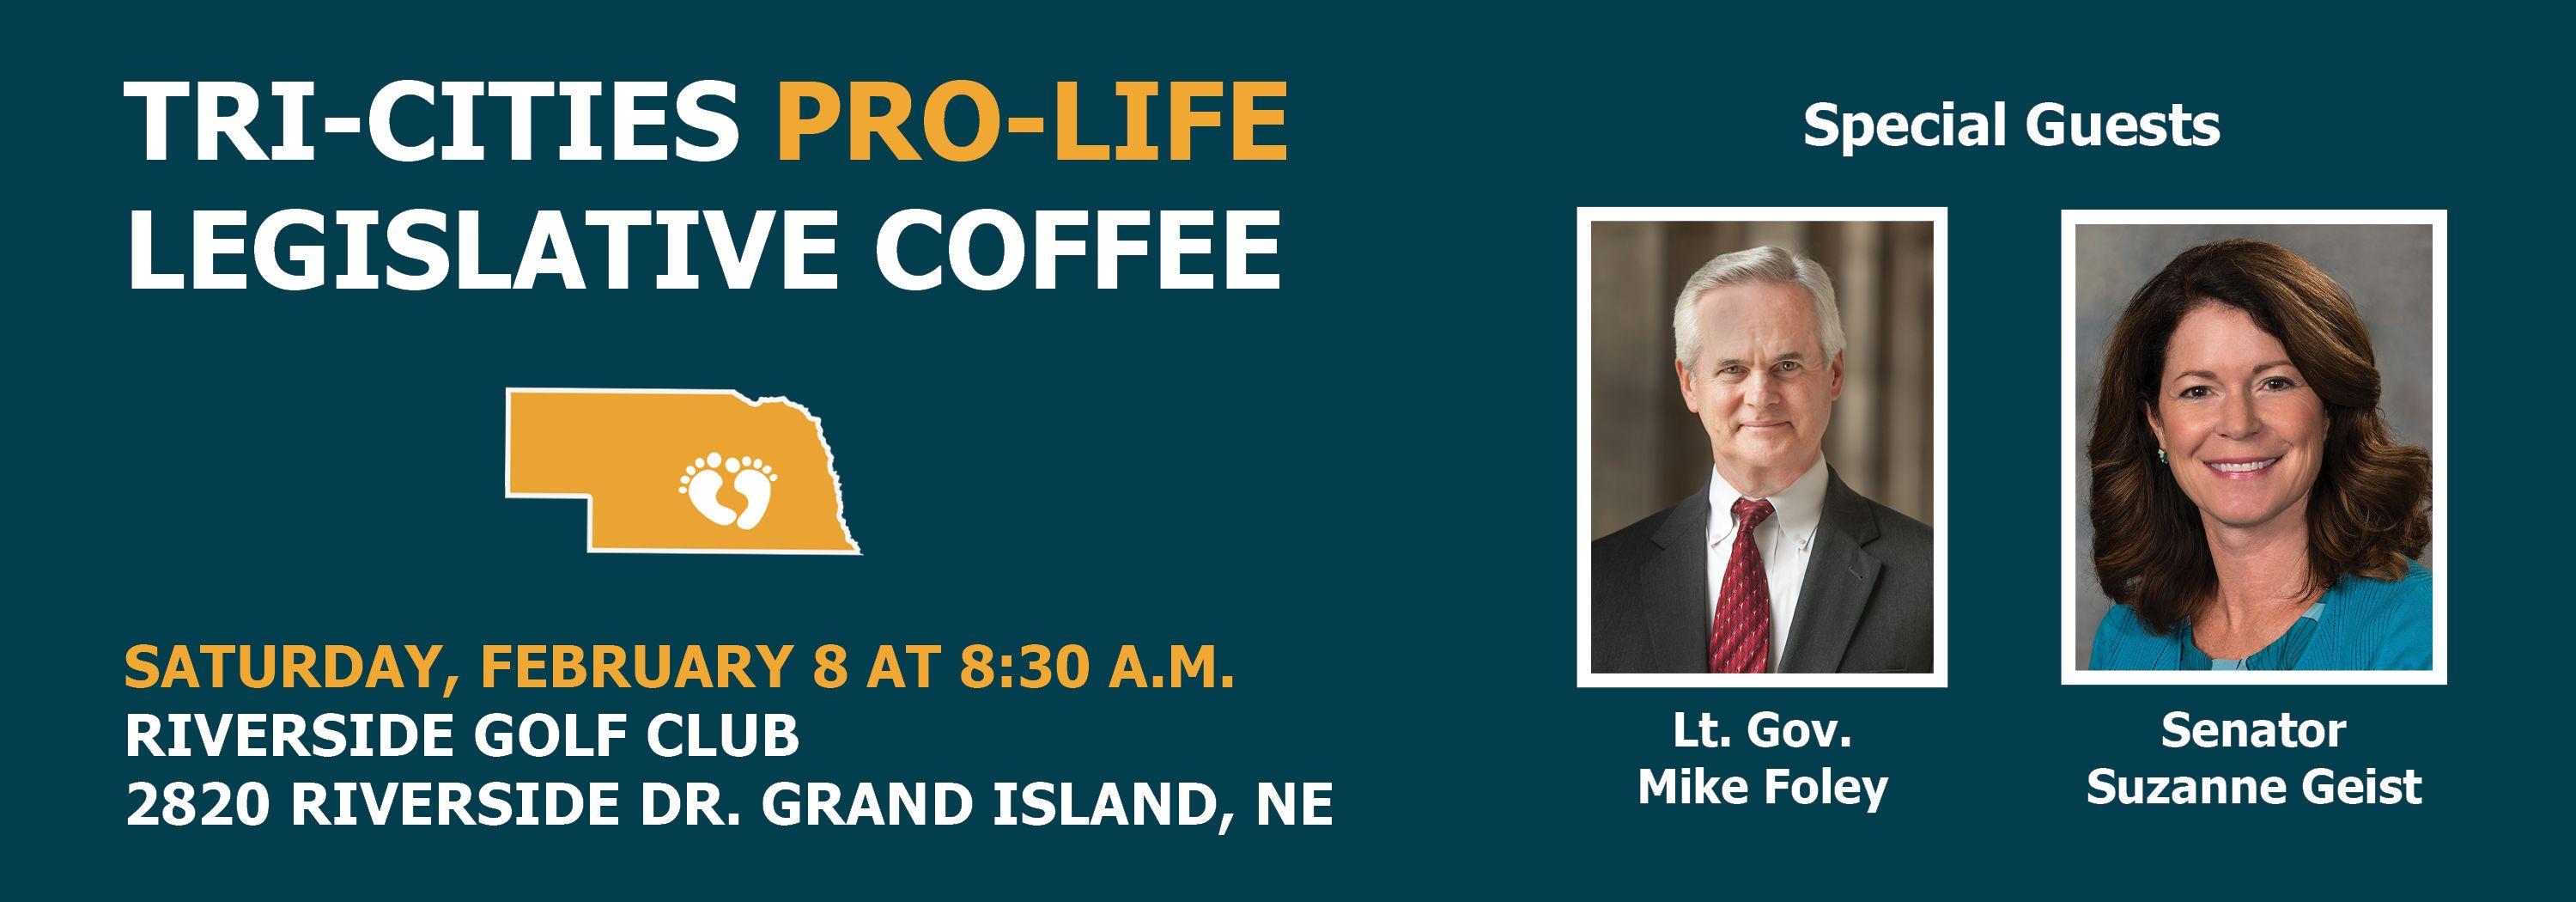 Tri-Cities Pro-Life Legislative Coffee